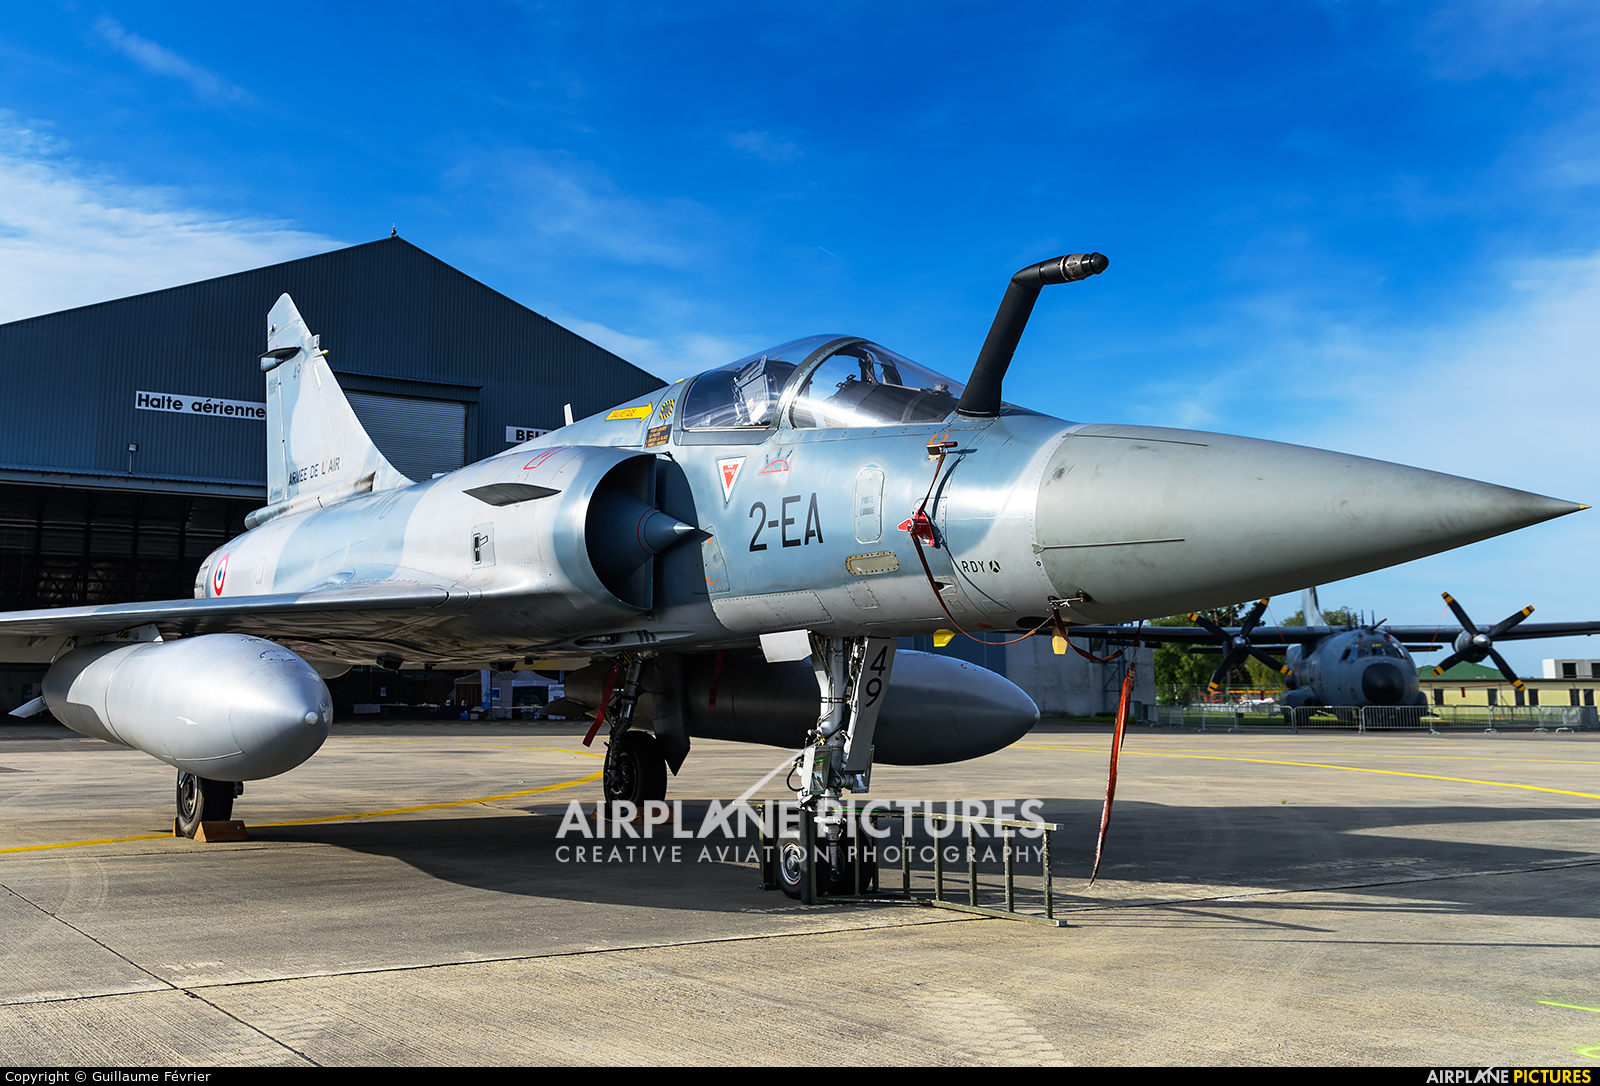 France - Air Force 2-EA aircraft at Evreux Fauville